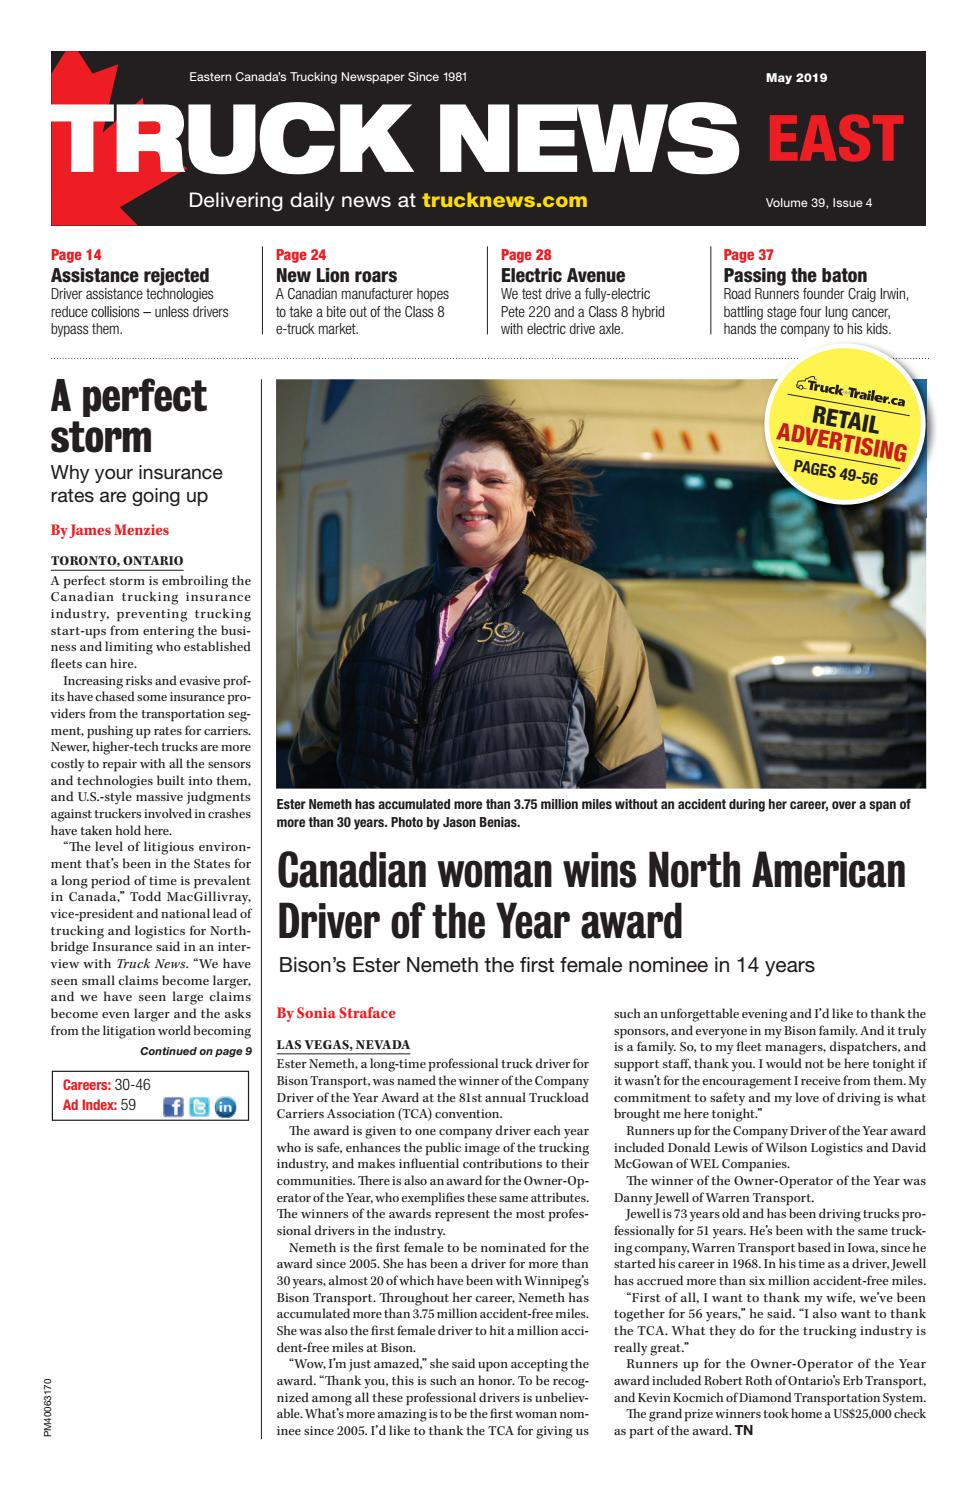 Truck News - East May 2019 by Annex Business Media - issuu